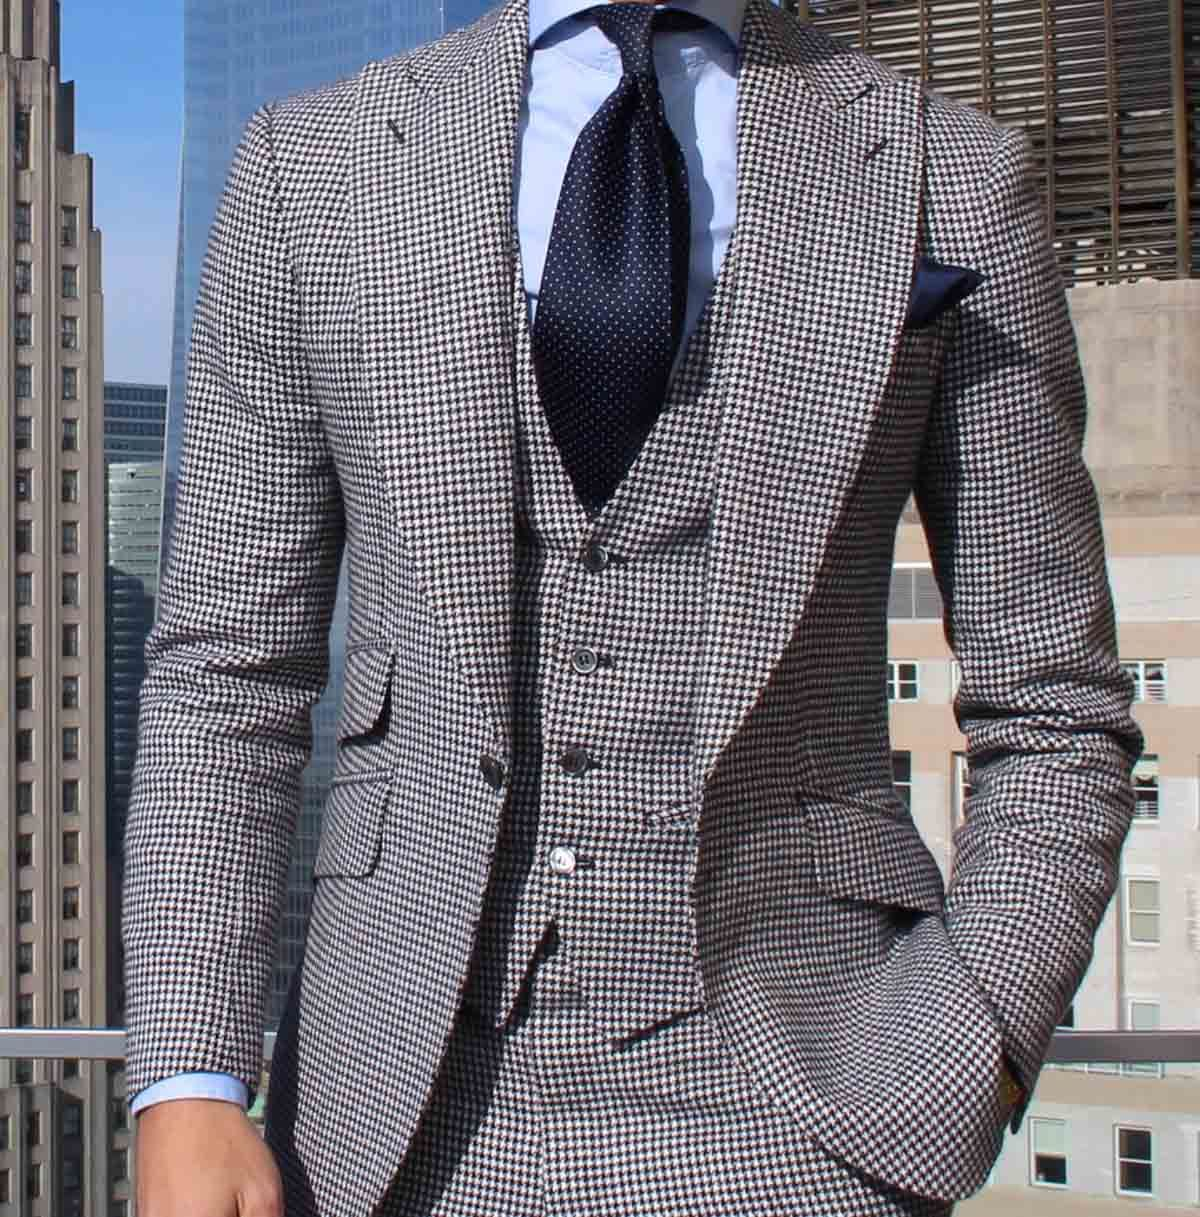 Suits trajes absolute bespoke outfits pinterest bespoke man